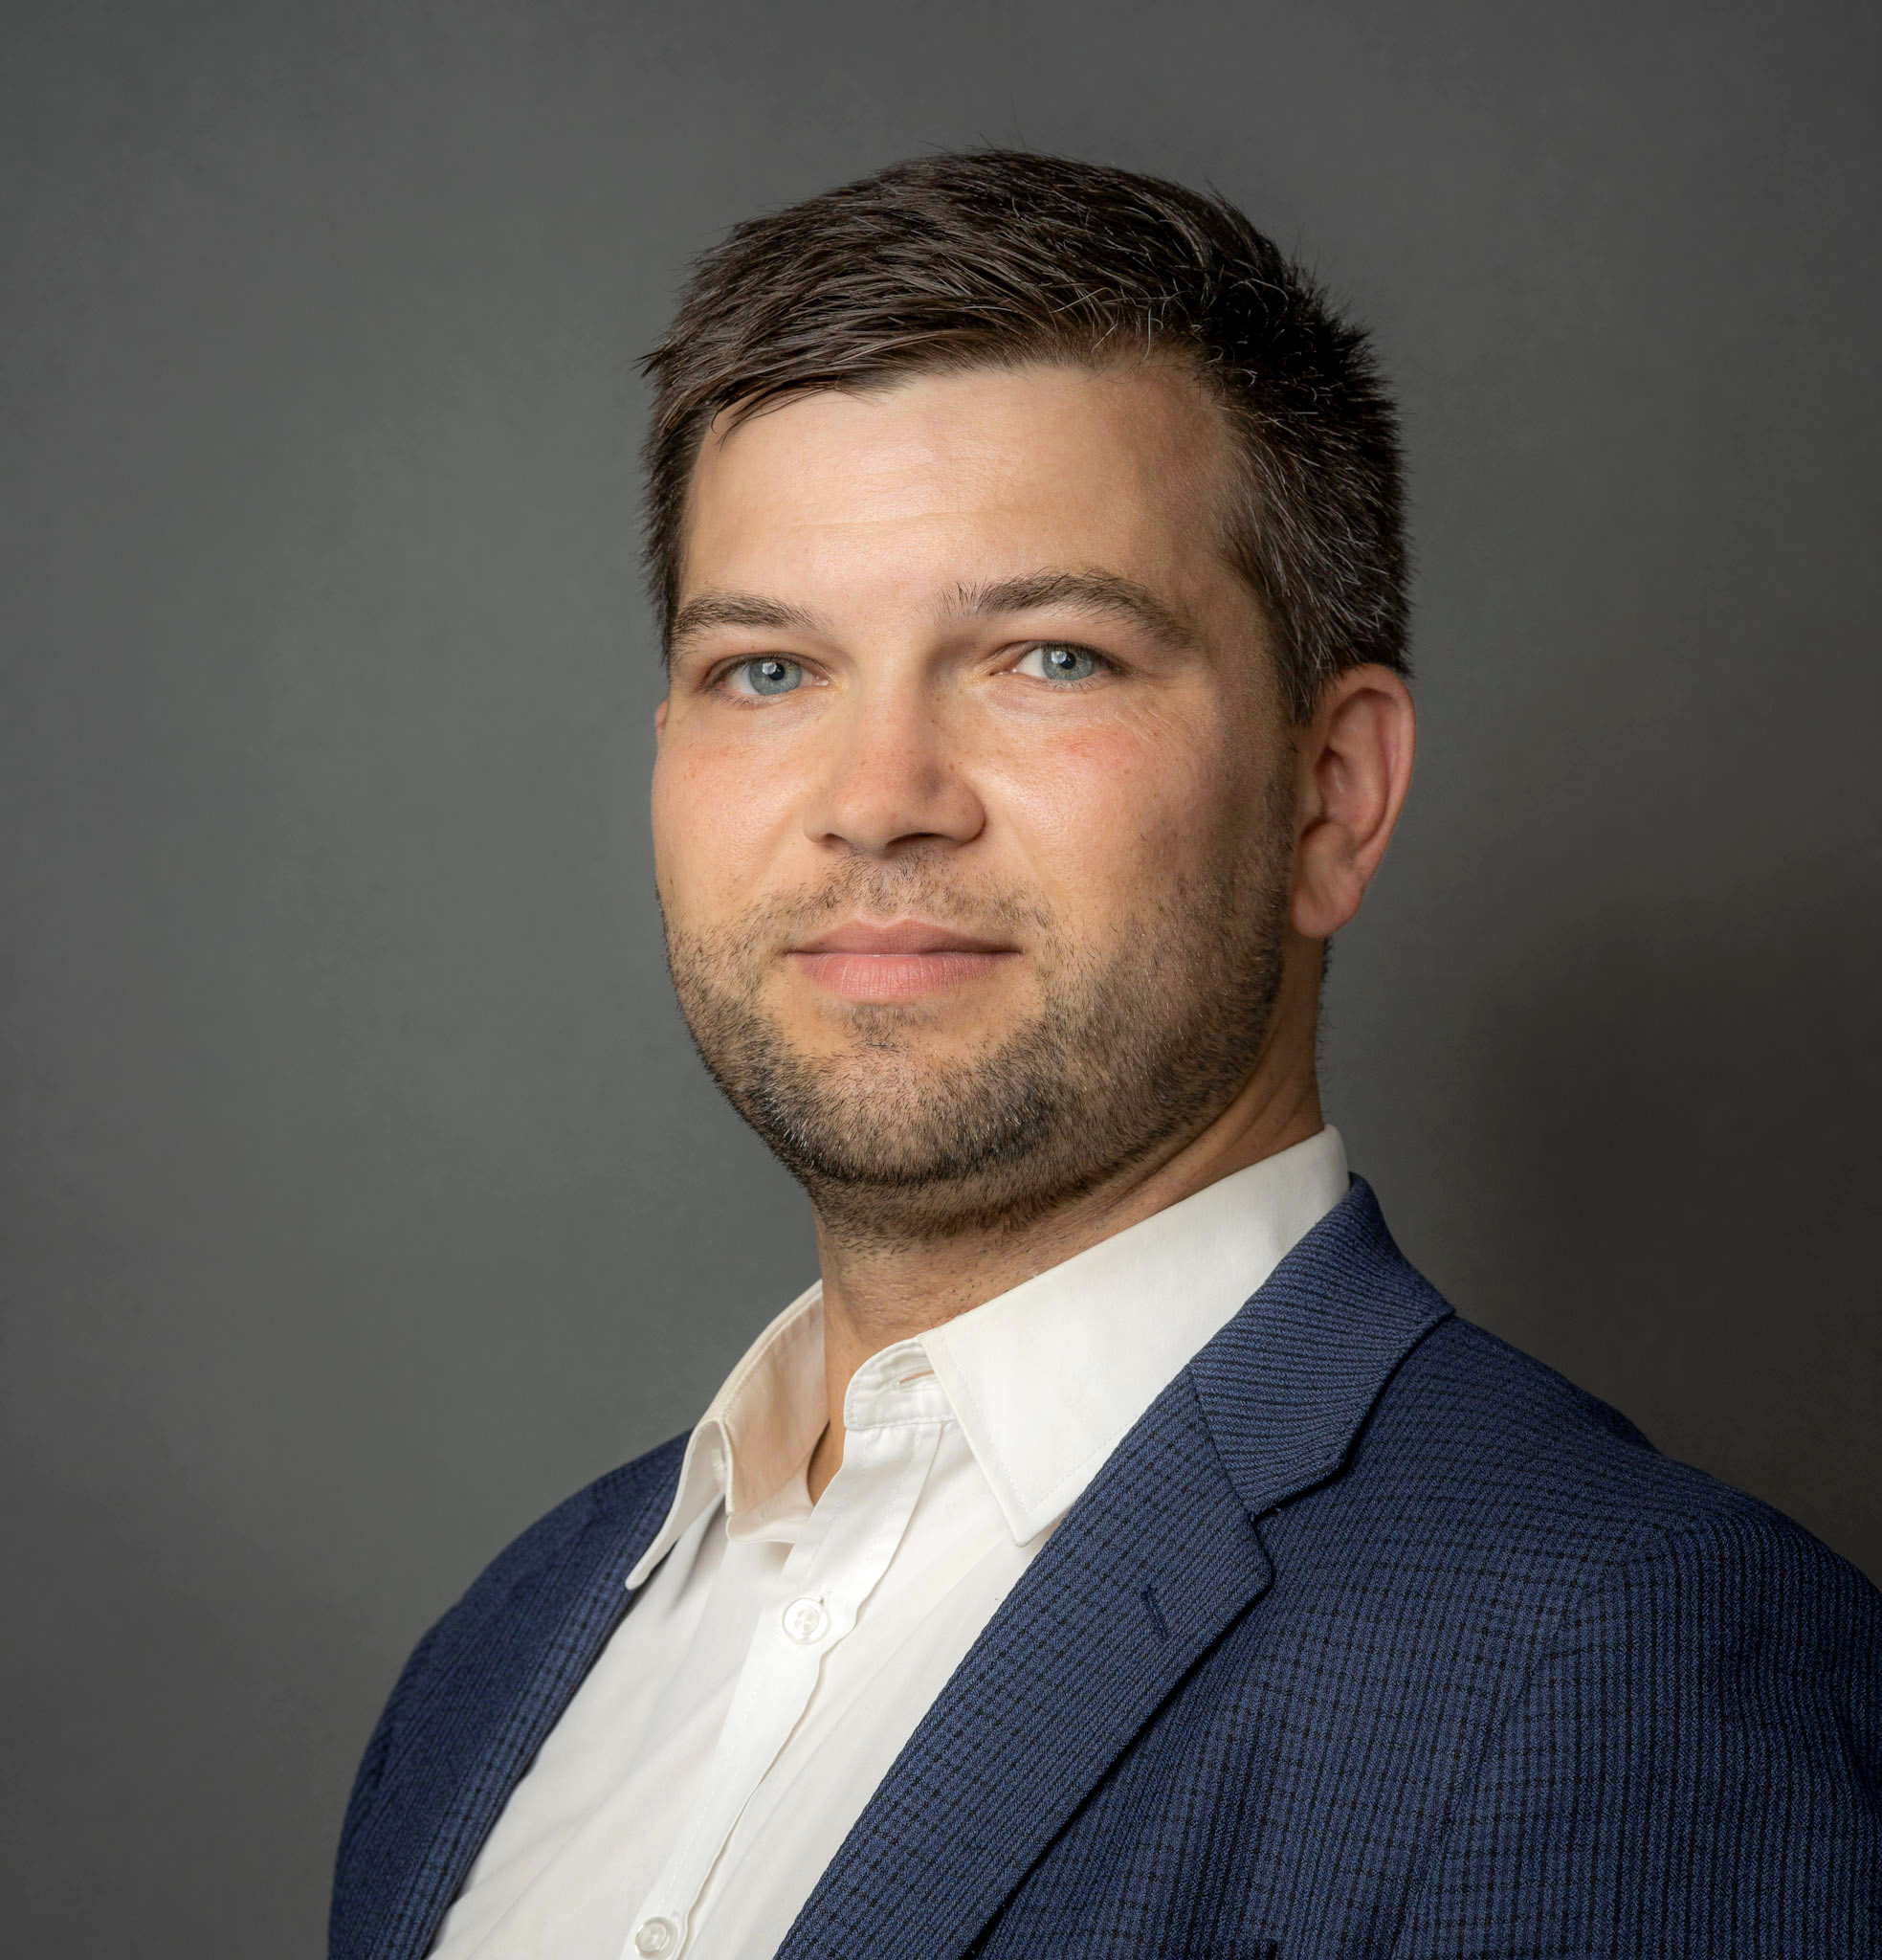 Michal Konstanty - Project Manager